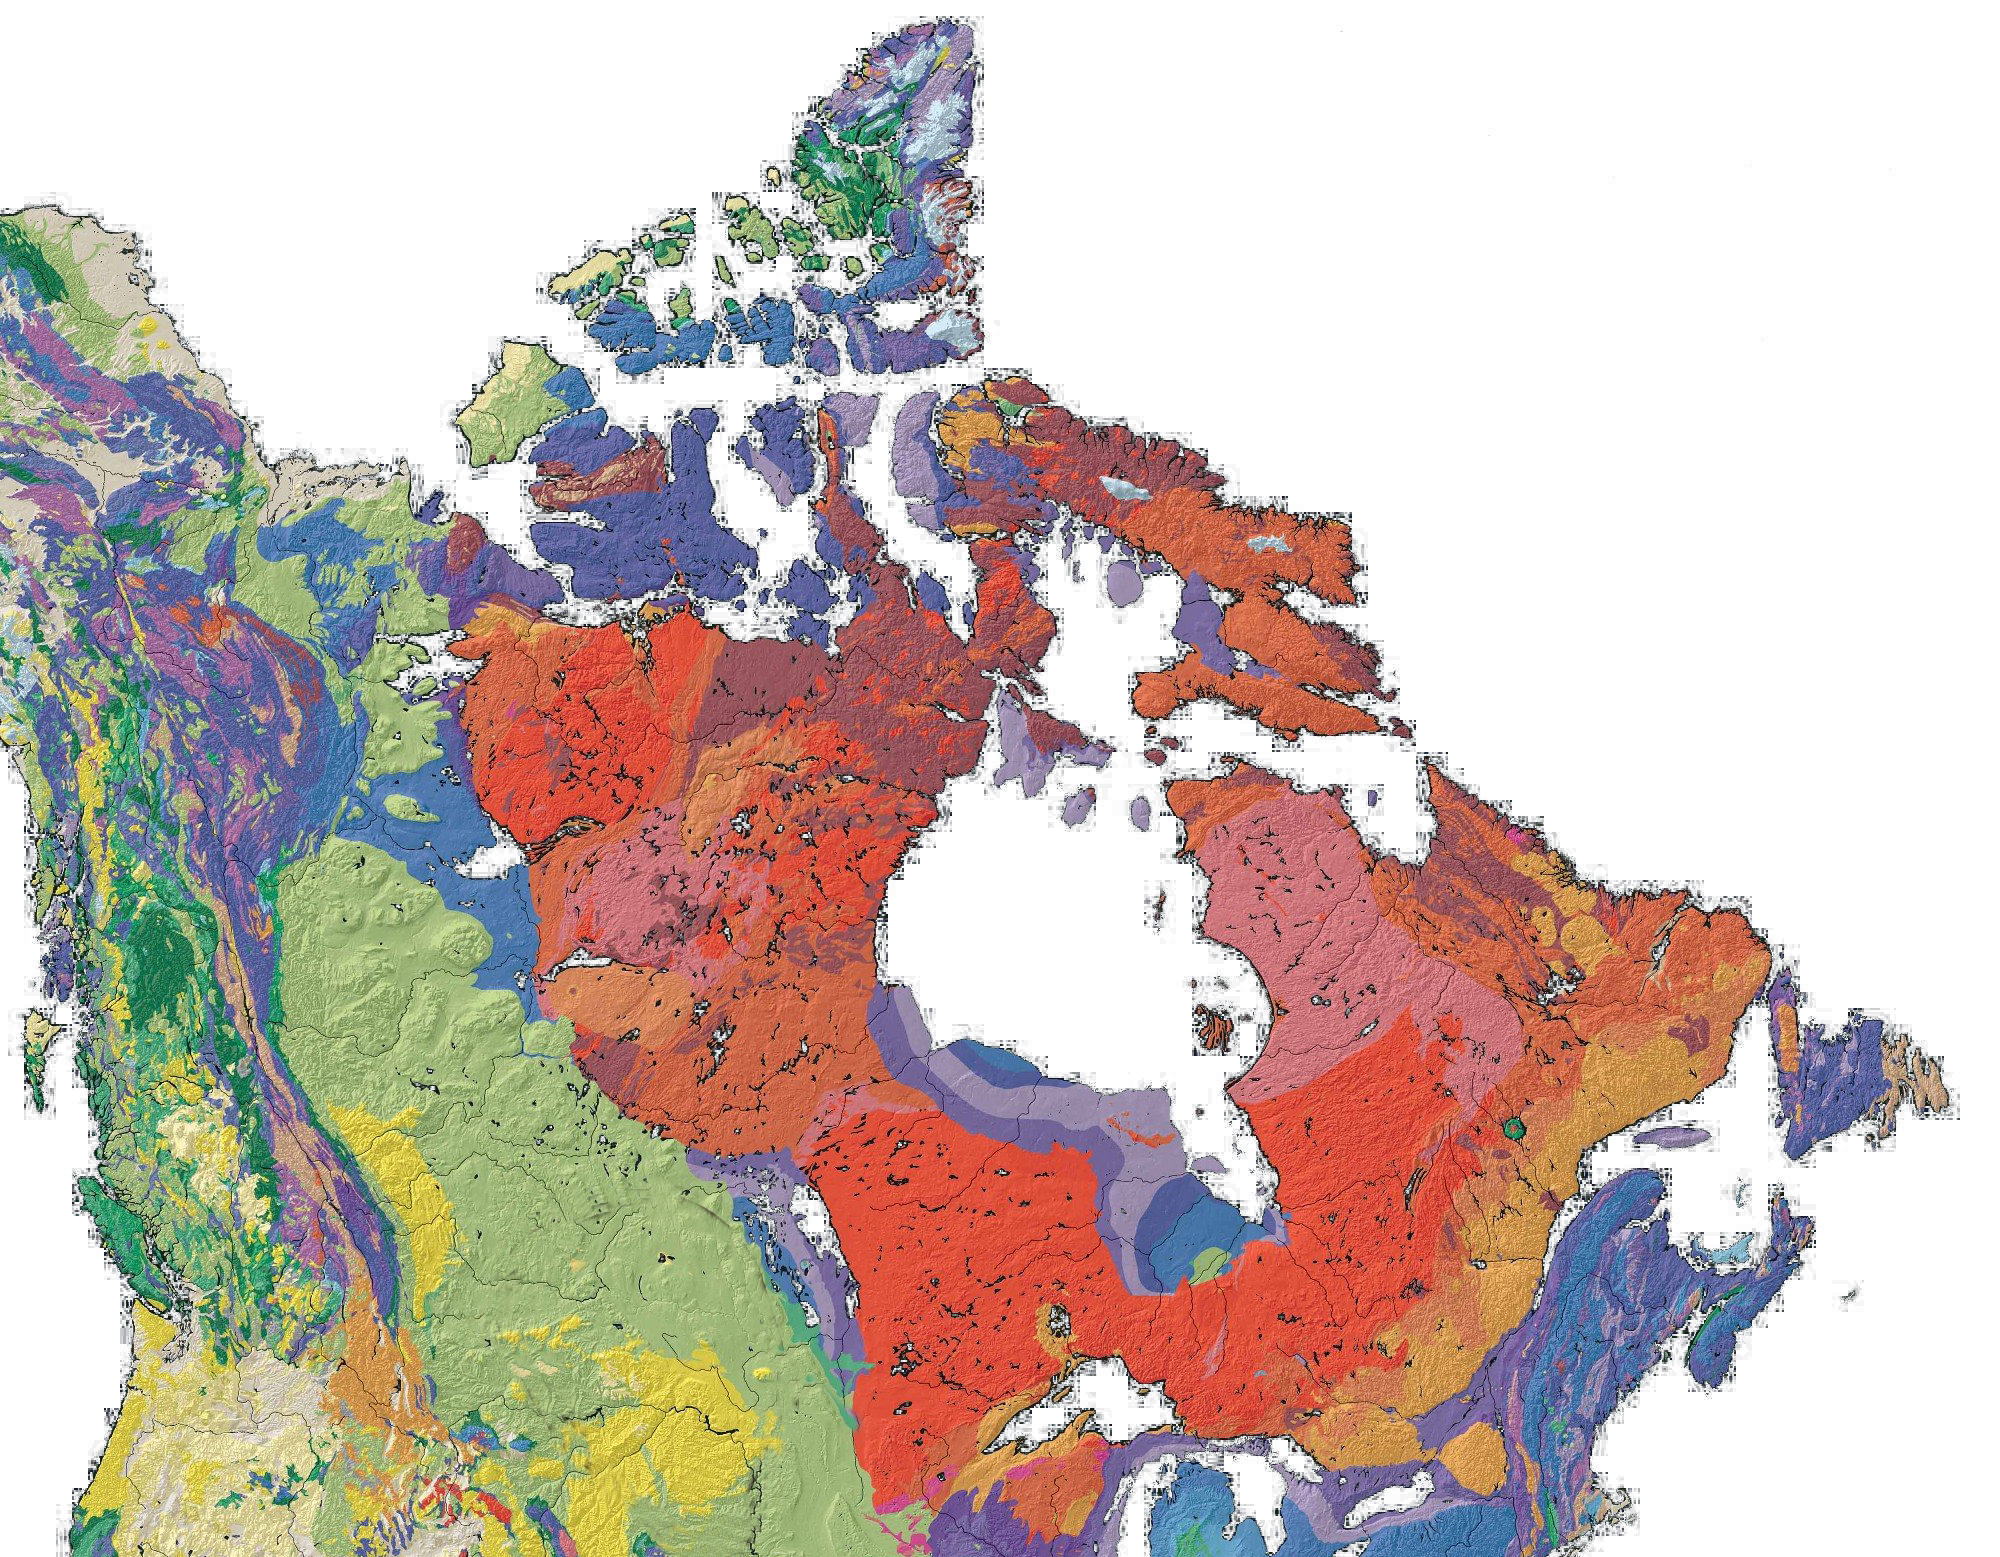 Canadian Shield - Wikipedia on industry map of jordan, industry map of pakistan, industry map of cameroon, industry map of ukraine, industry map of croatia, industry map of florida, industry map of brazil, industry map of madagascar, industry map of jamaica, industry map of indonesia, industry map of philippines, industry map washington, industry map of world, economy of canada, brochure of canada, industry map of texas, industry map of victoria, industry map europe, industry map missouri, industry map of barbados,